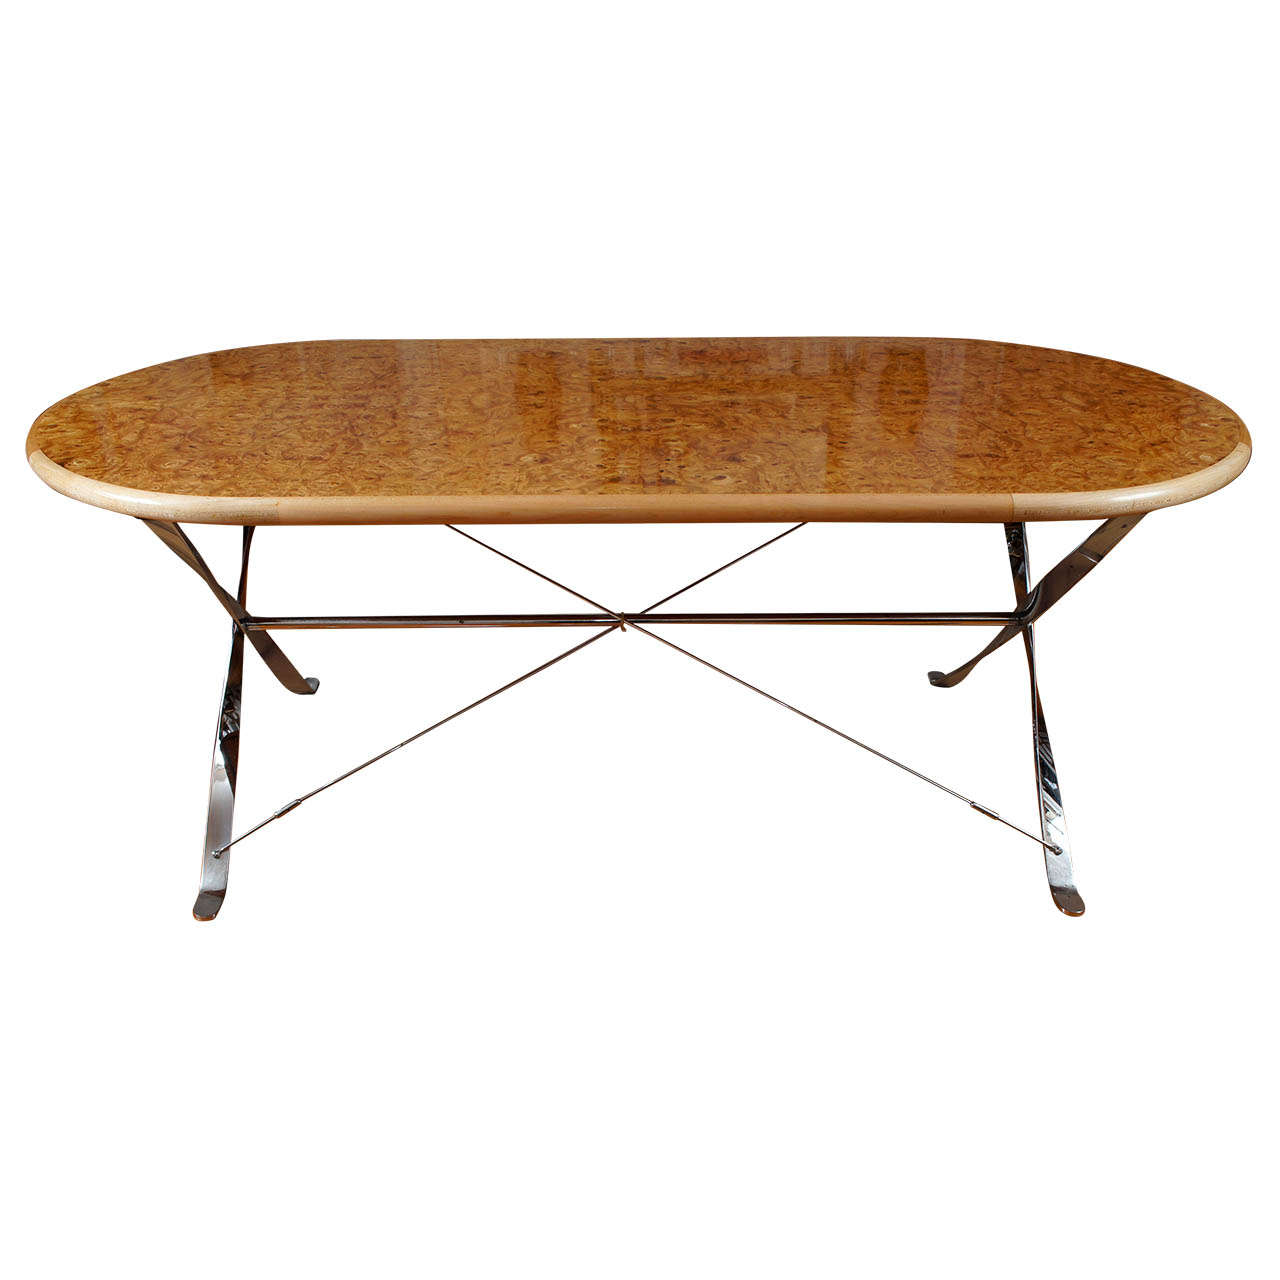 Oval burl maple dining table on stainless steel base for sale at 1stdibs - Steel dining room table ...